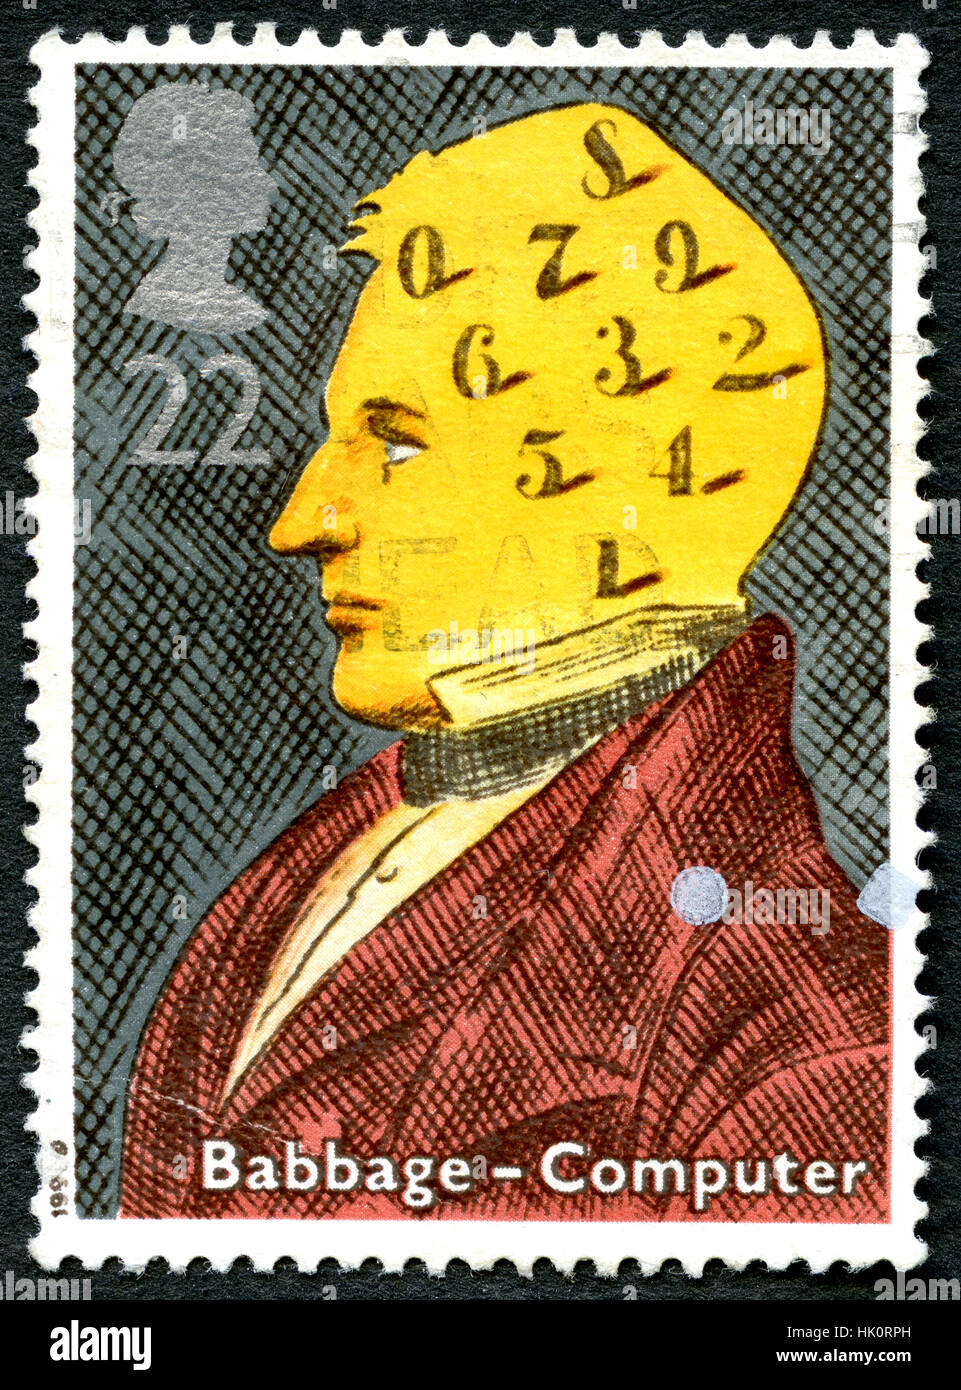 GREAT BRITAIN - CIRCA 1991 : A used postage stamp from the UK, commemorating the life of Charles Babbage - noted - Stock Image